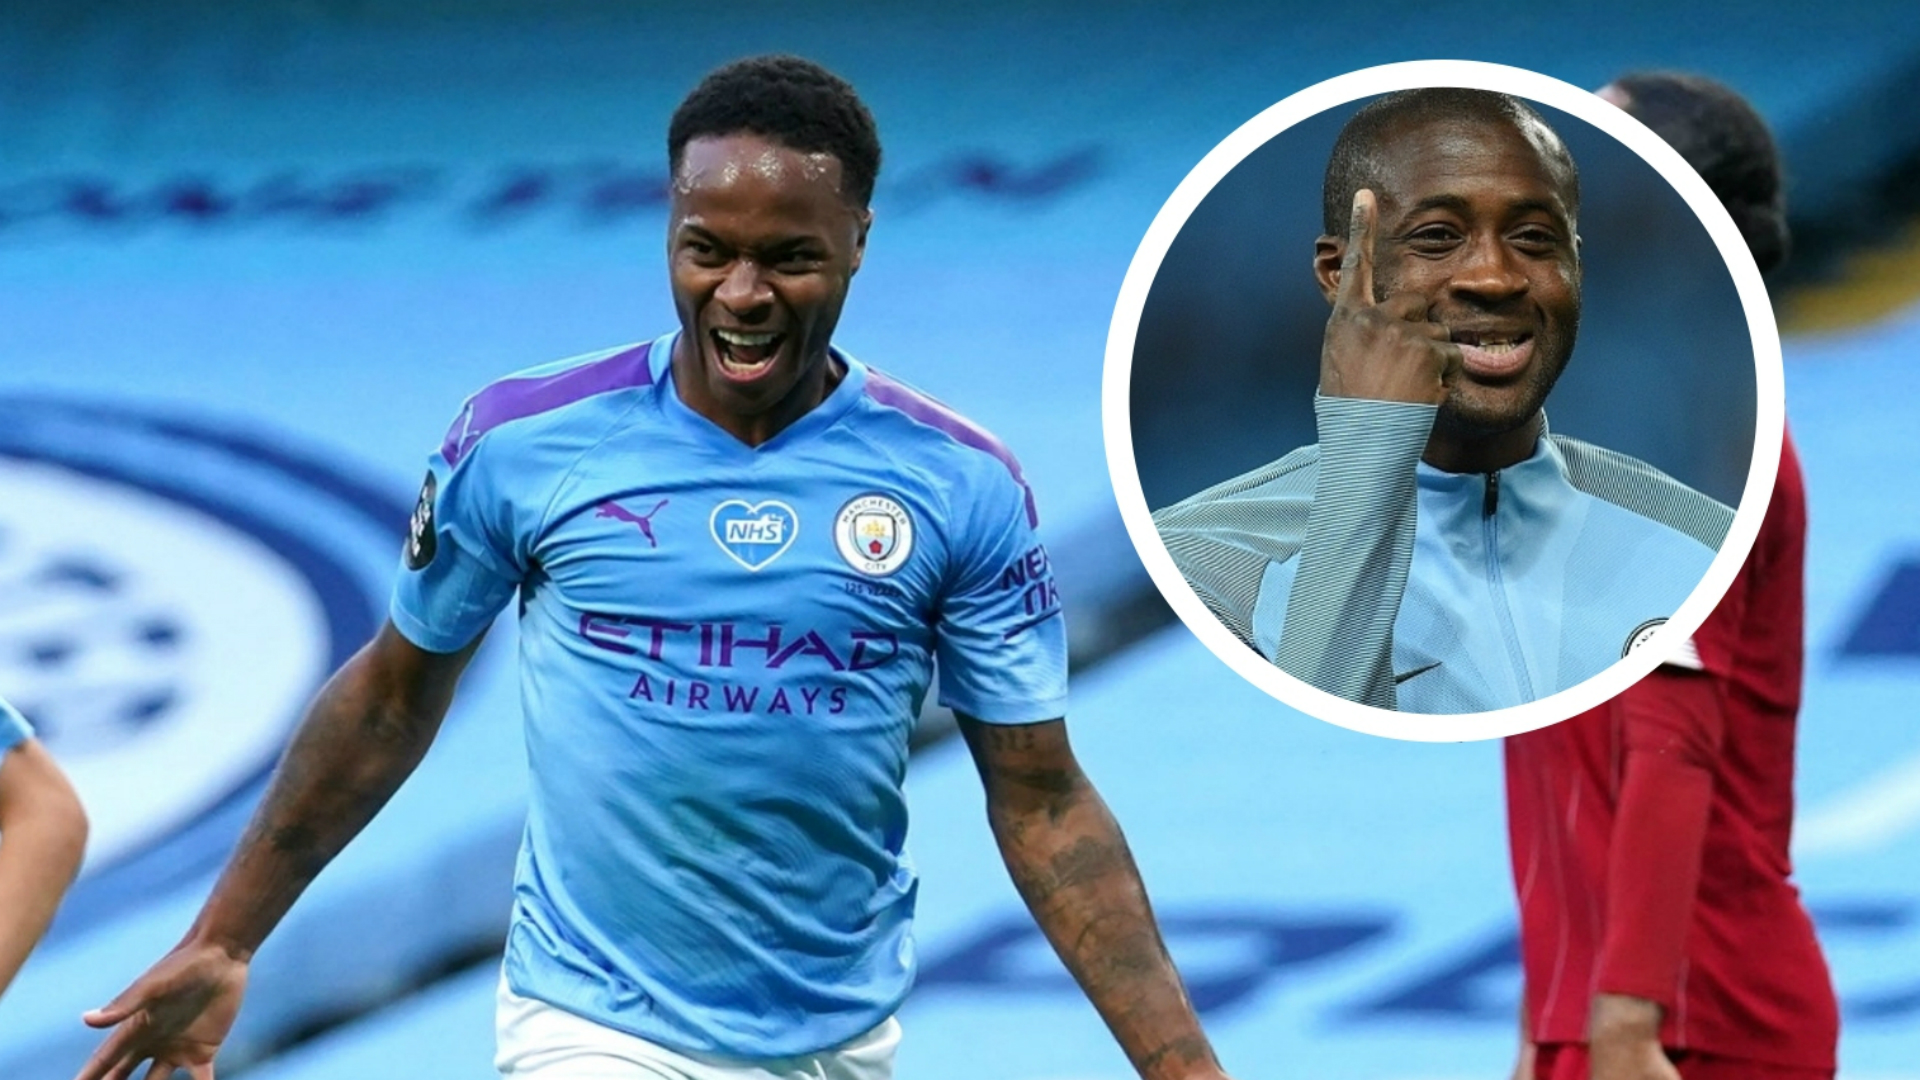 Sterling surpasses Yaya Toure's Manchester City goal record with Brighton opener